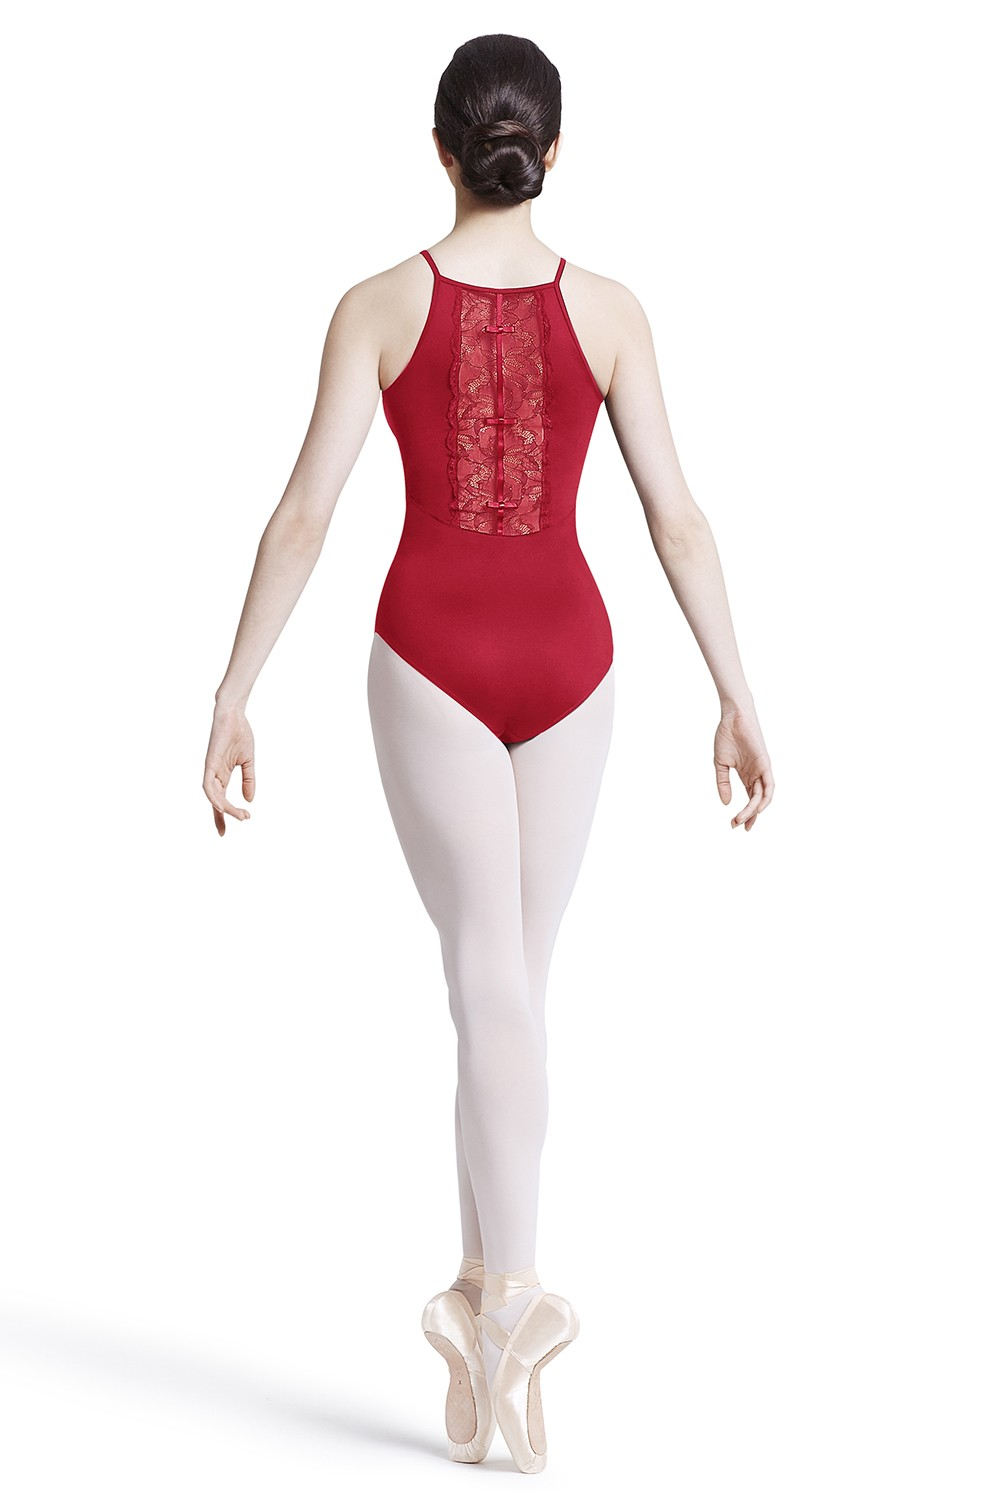 High Lace Back Panel Leotard Women's Dance Leotards